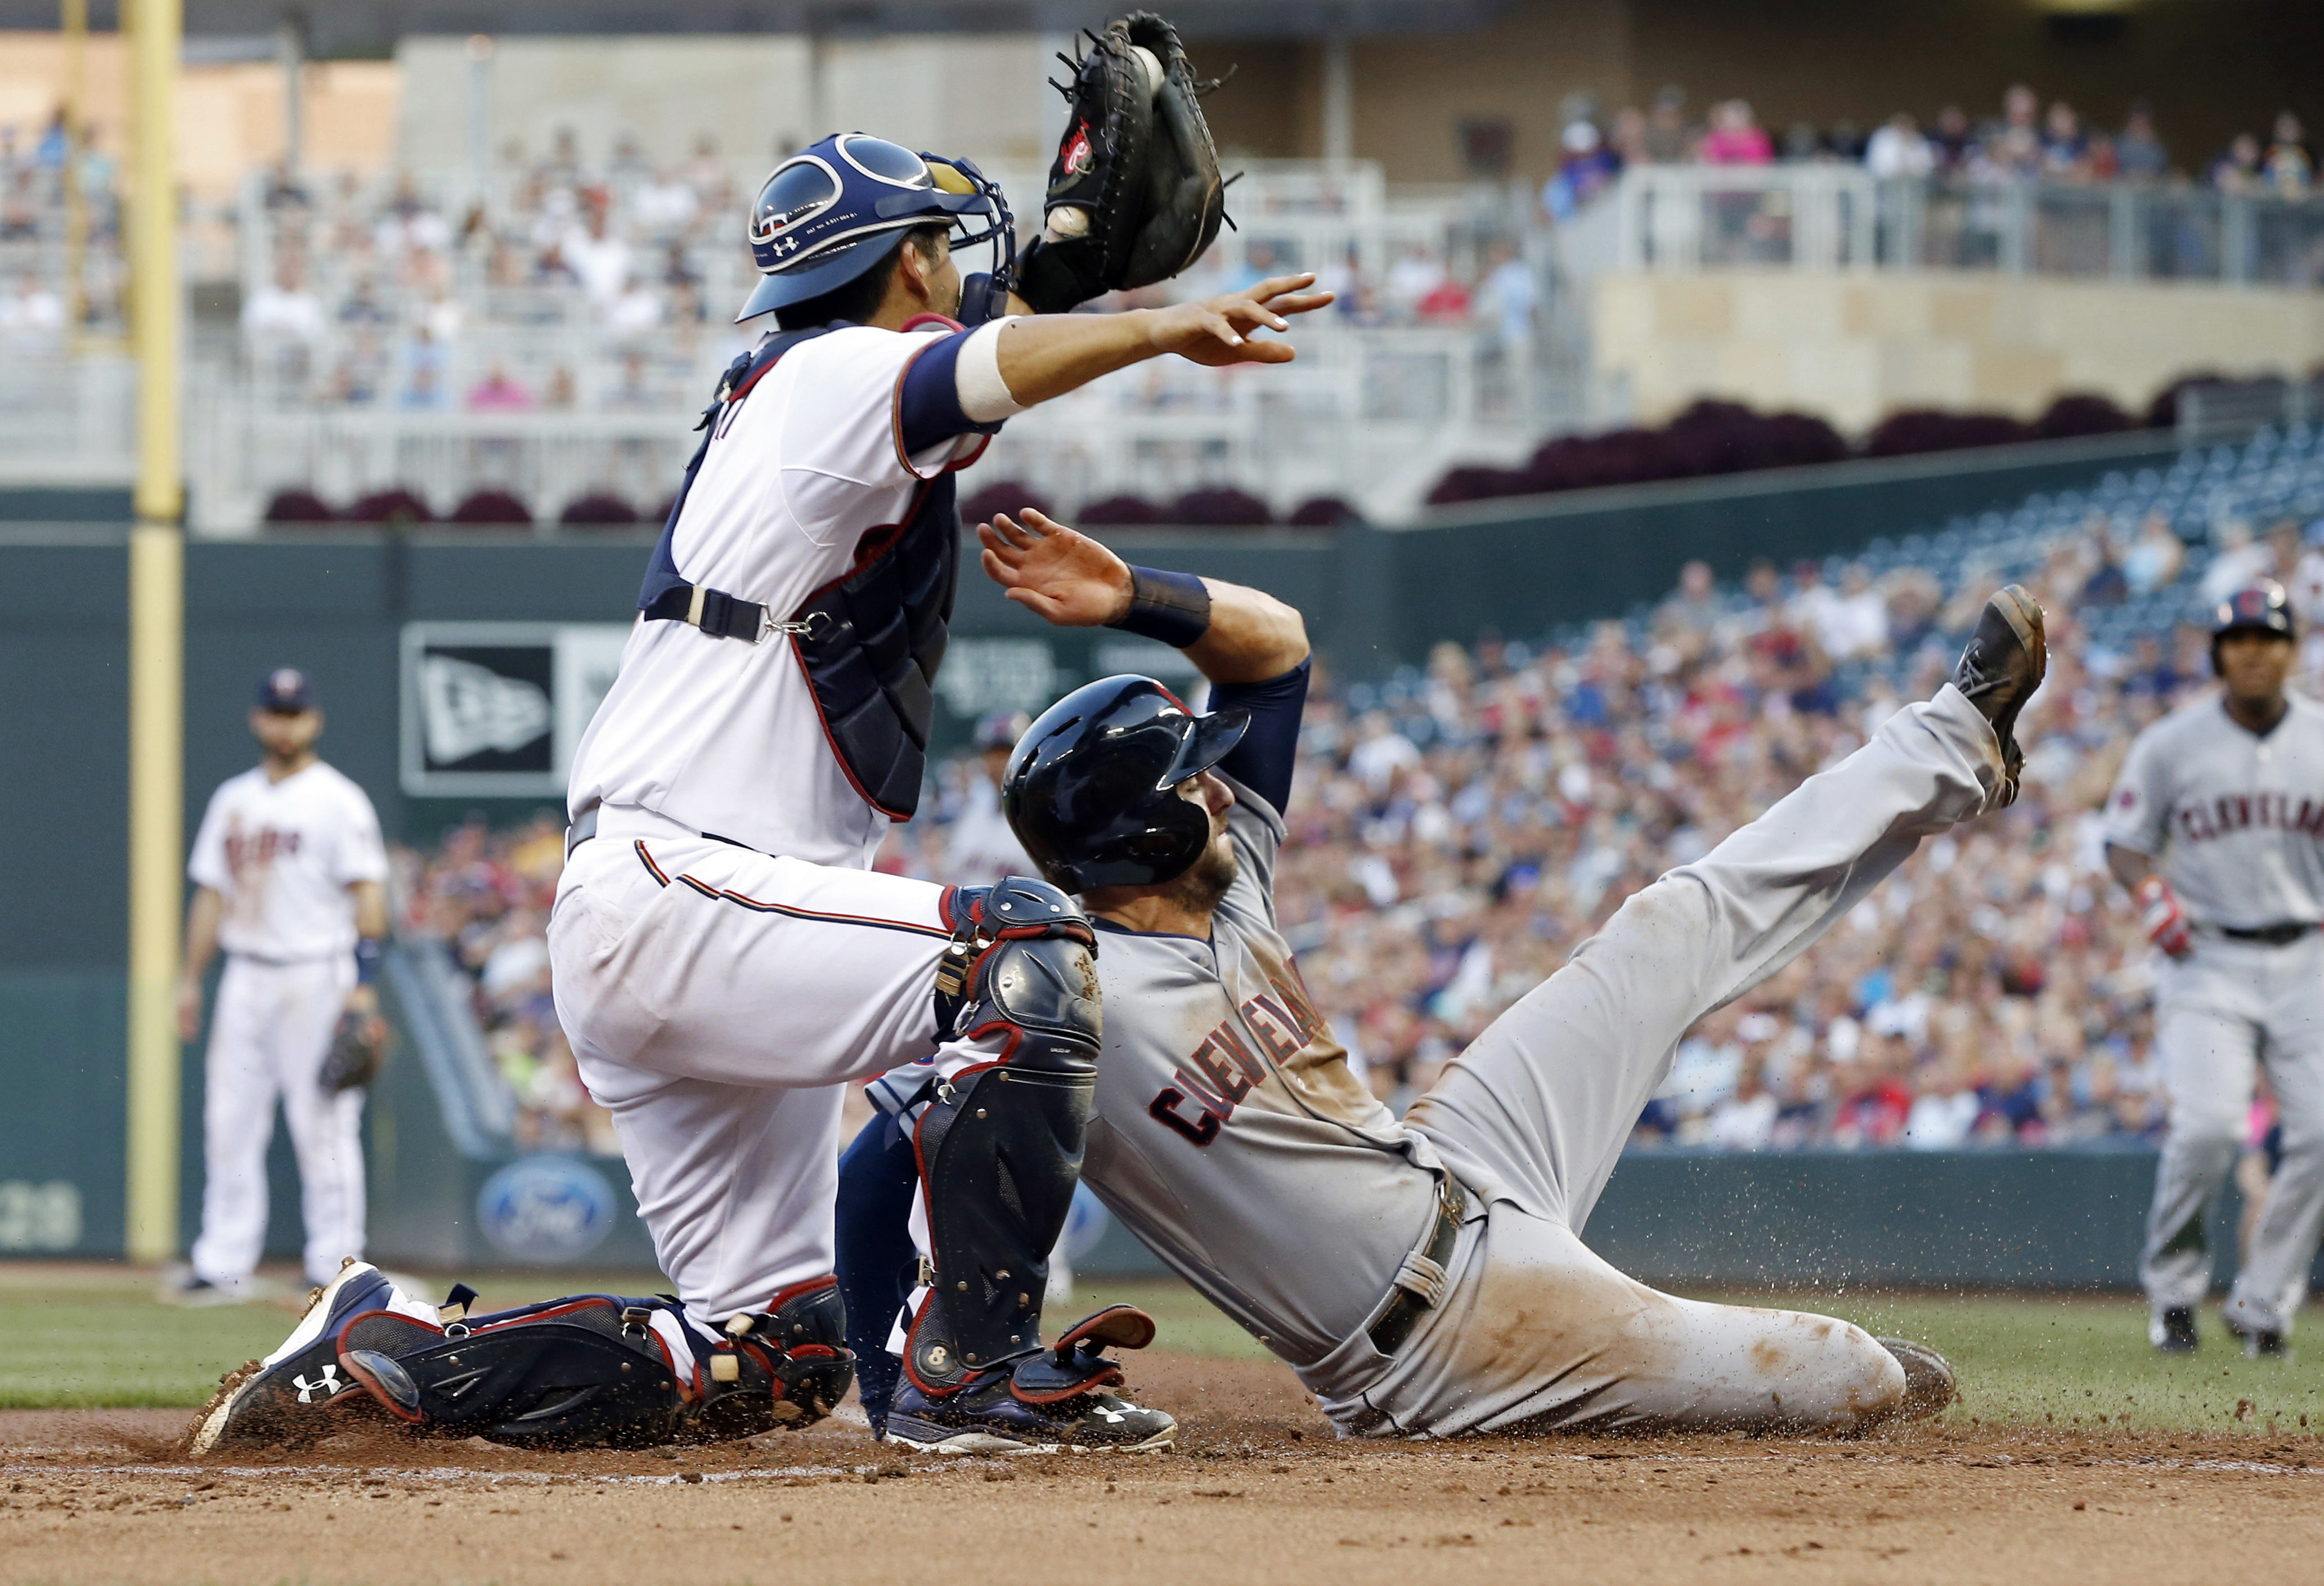 Cleveland Indians' Lonnie Chisenhall, right, is tagged out by Minnesota Twins catcher Kurt Suzuki as he tried to score on a hit by Mike Aviles in the second inning of a baseball game, Friday, Aug. 14, 2015, in Minneapolis. Chisenhall was originally called